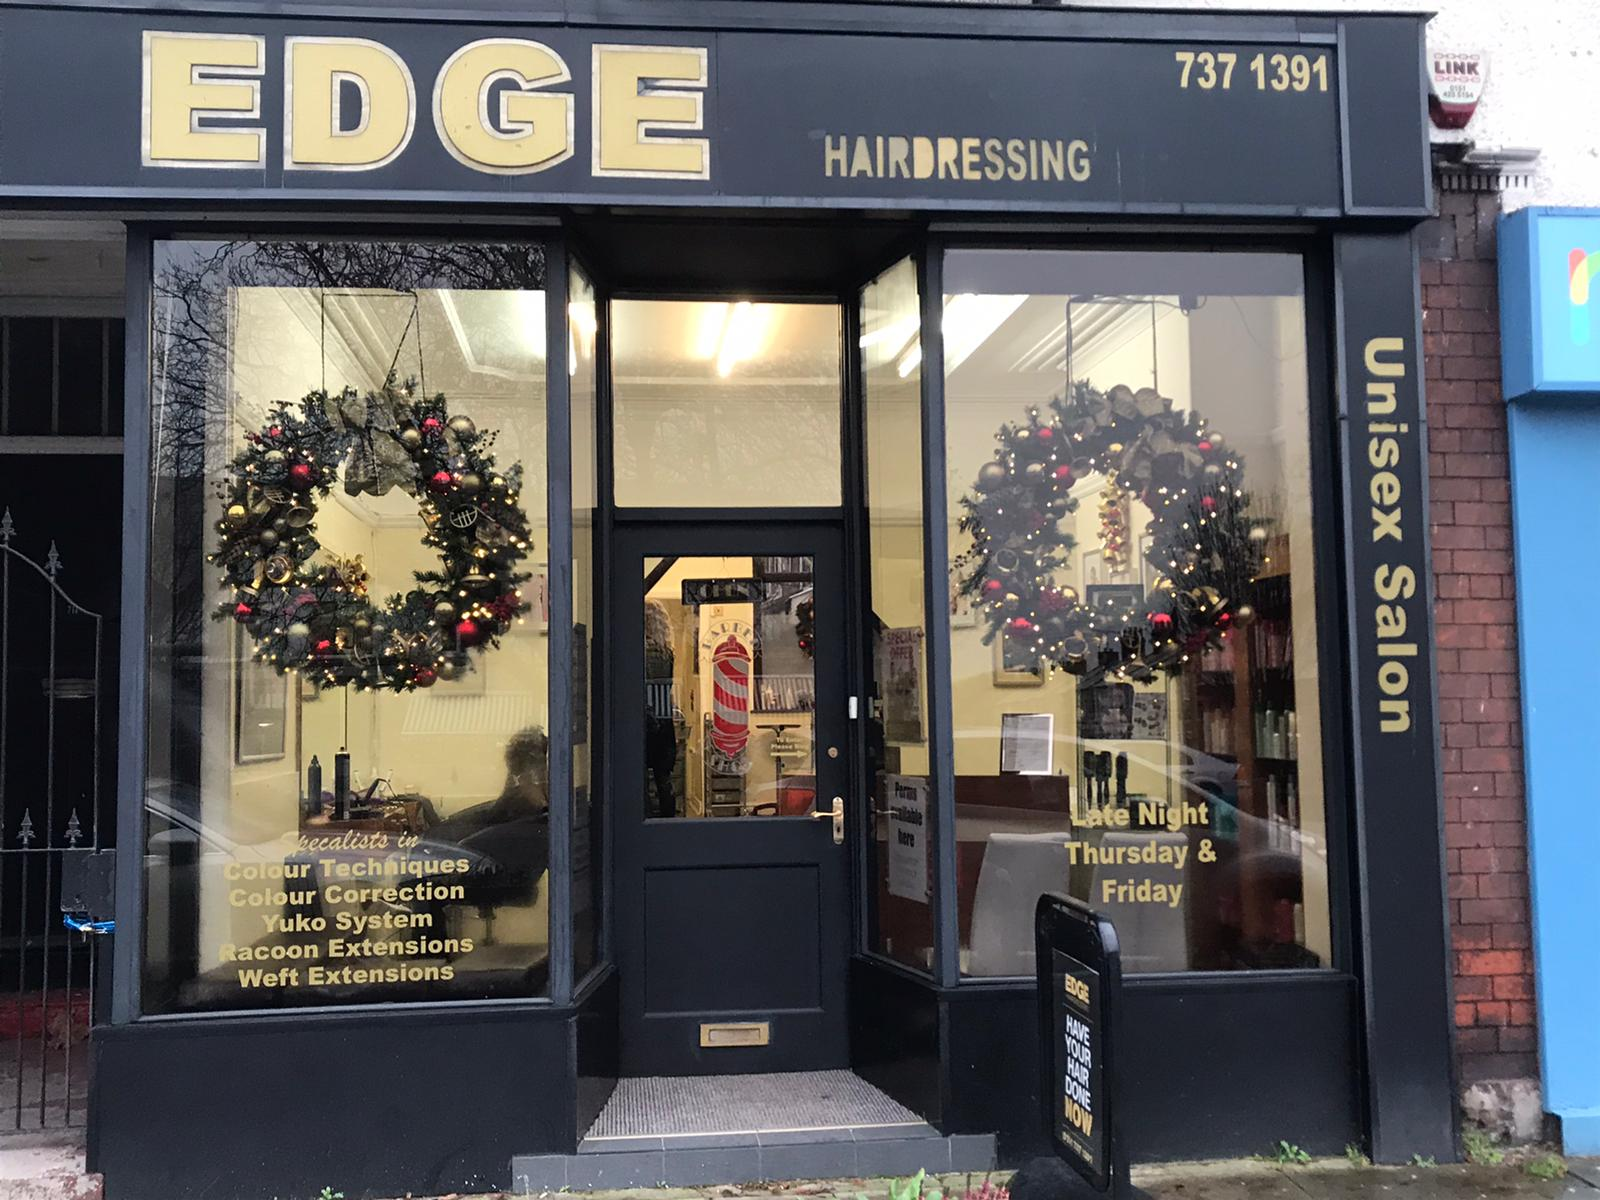 The Edge Hair Salon on Allerton Road, Mossley Hill with Cristmas decorations in the window : 2019